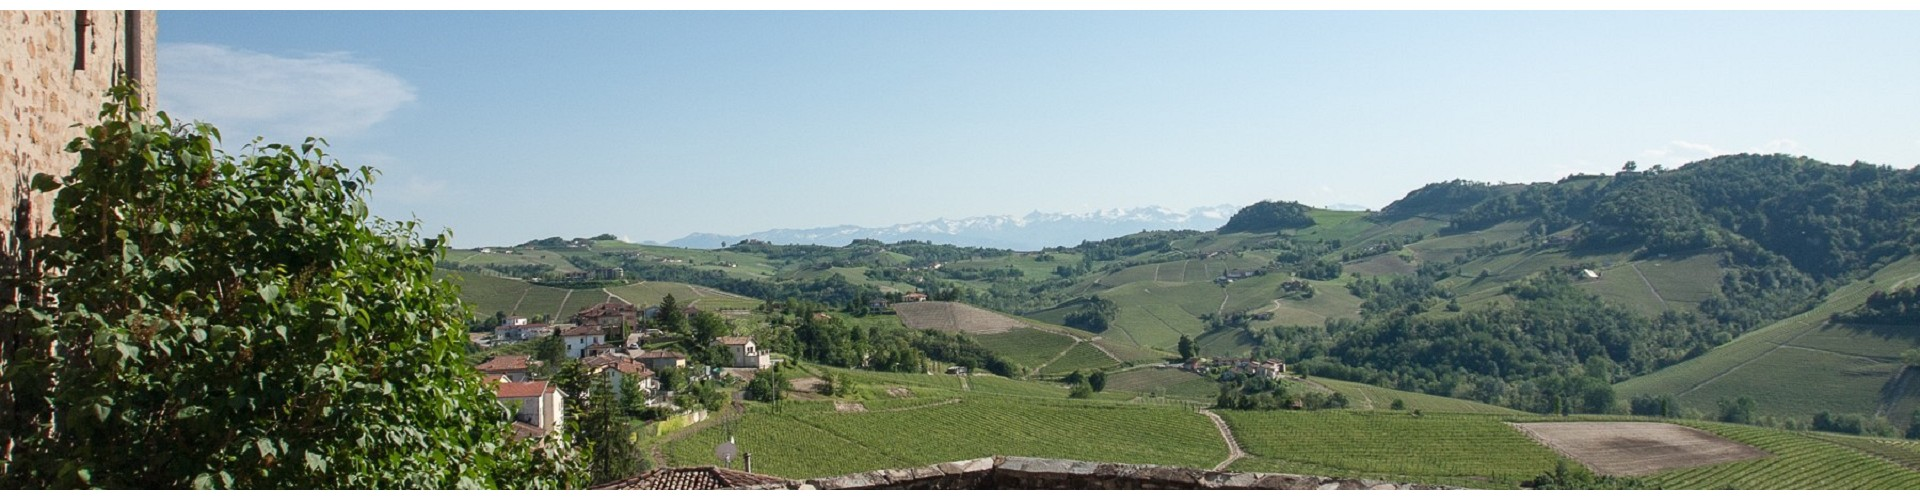 Barolo Wine Tours | Piedmont Wine Tours from Milan | Piedmont Food and Wine Tours